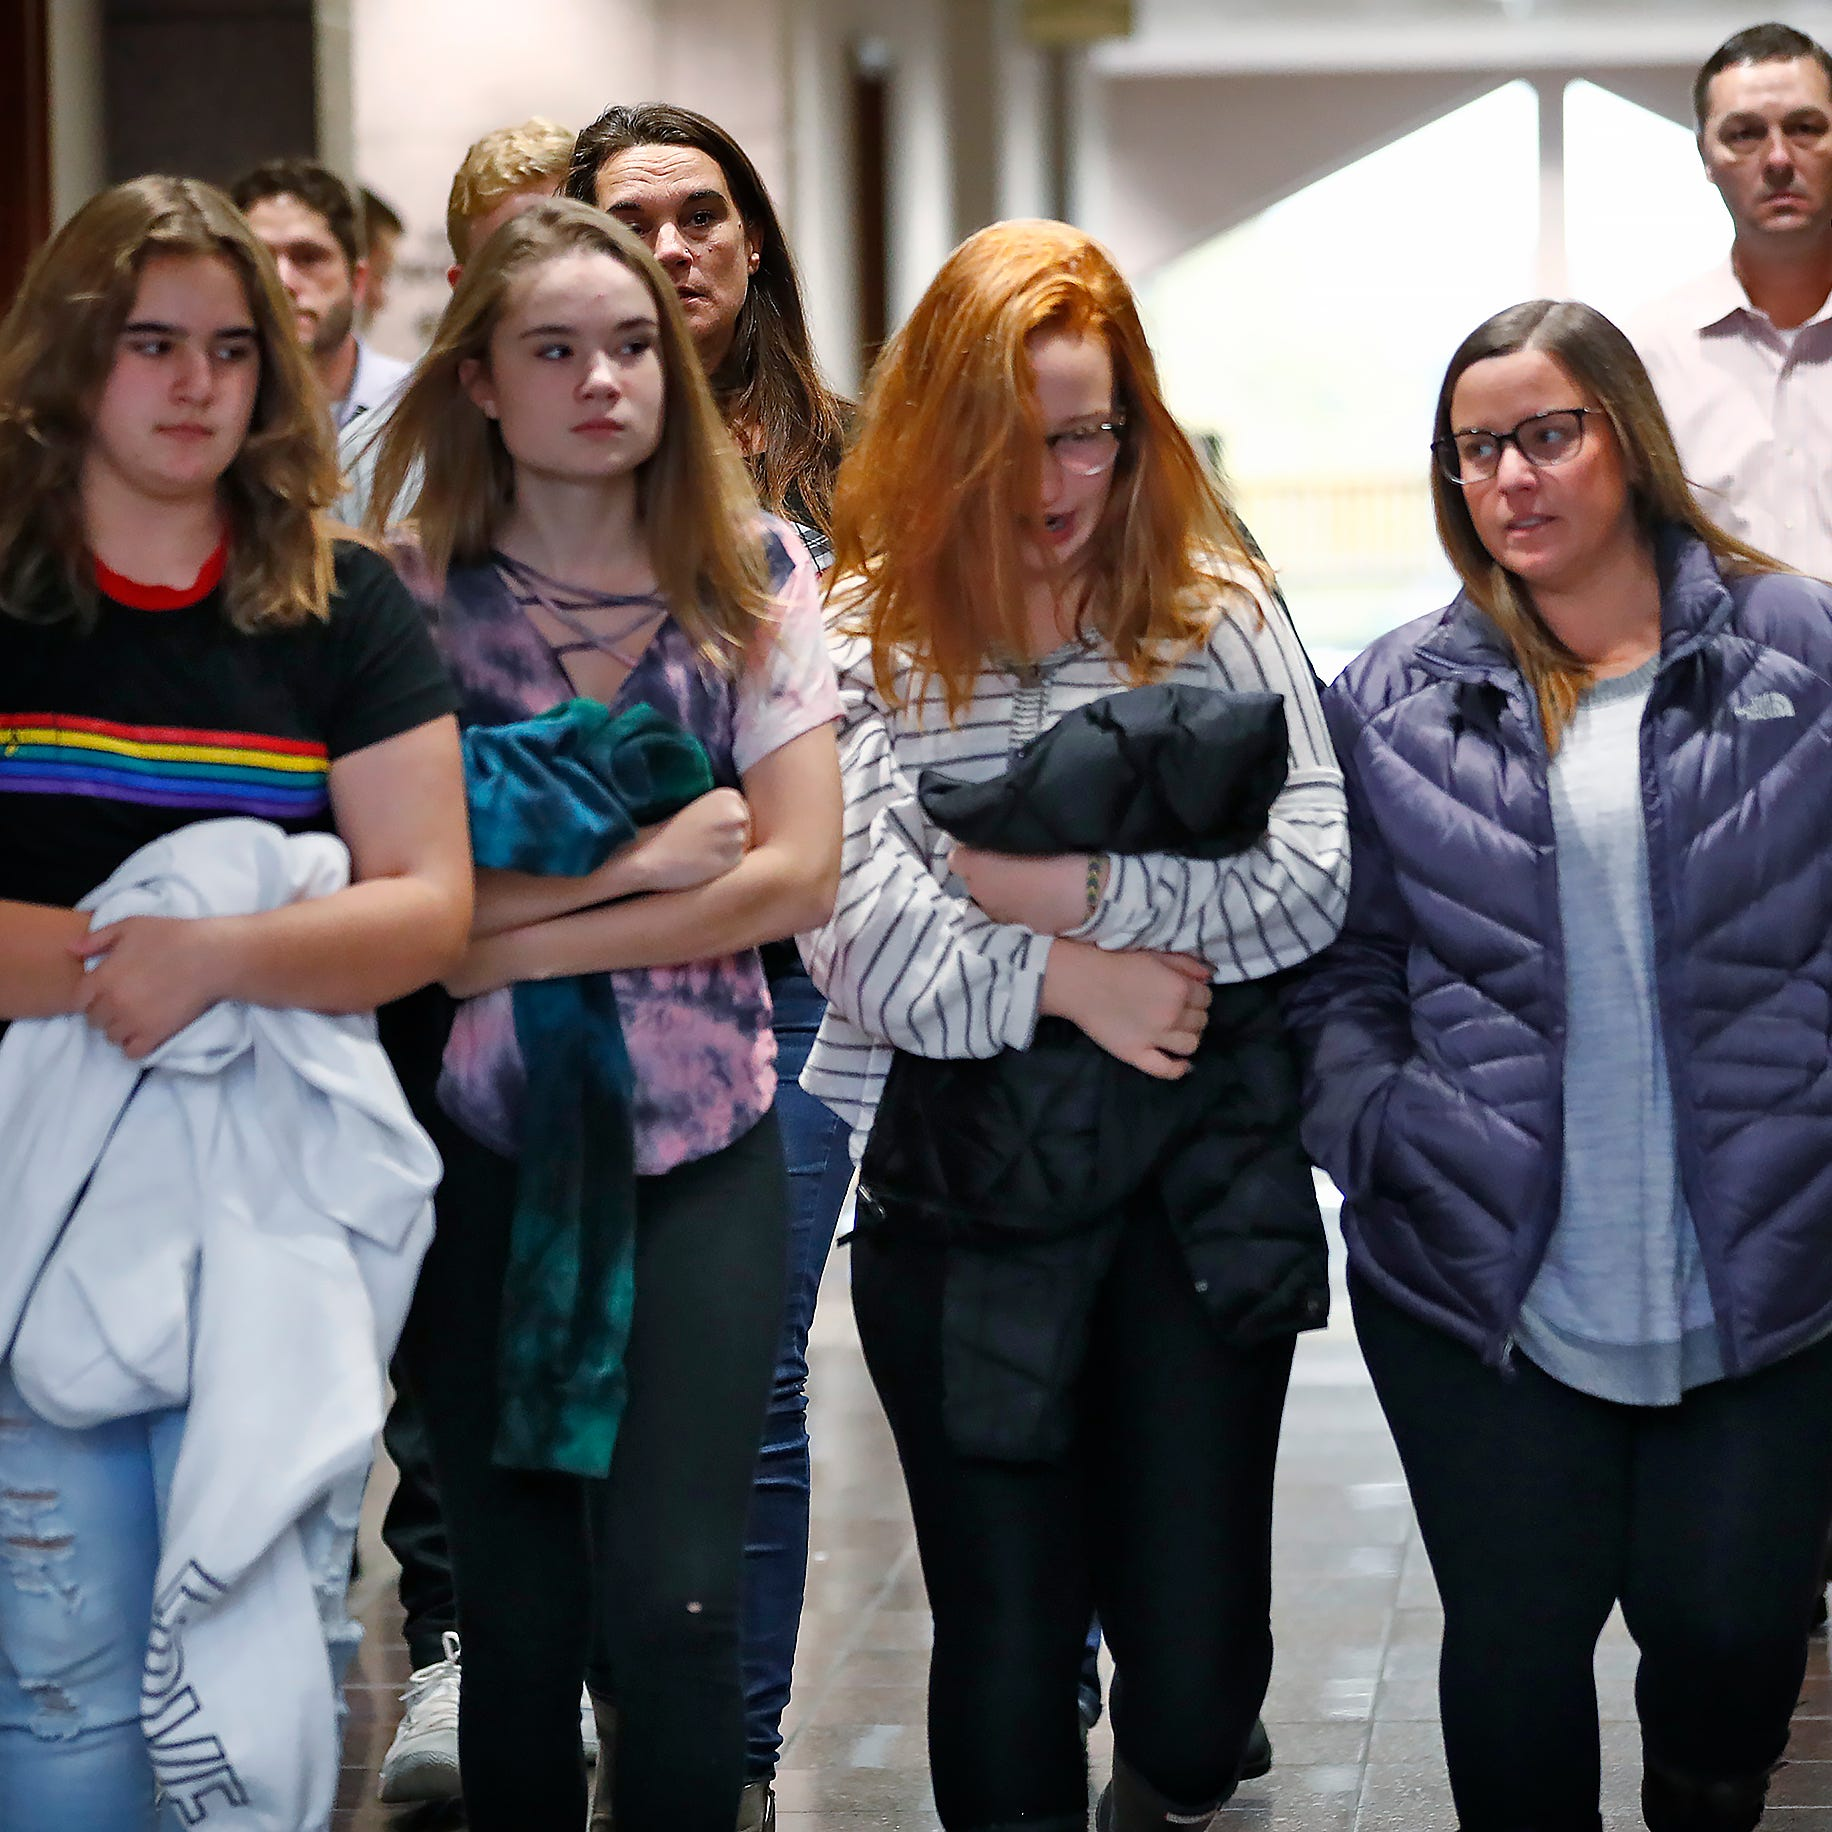 Noblesville school shooter sent to juvenile jail: 'You took this community's sense of safety'